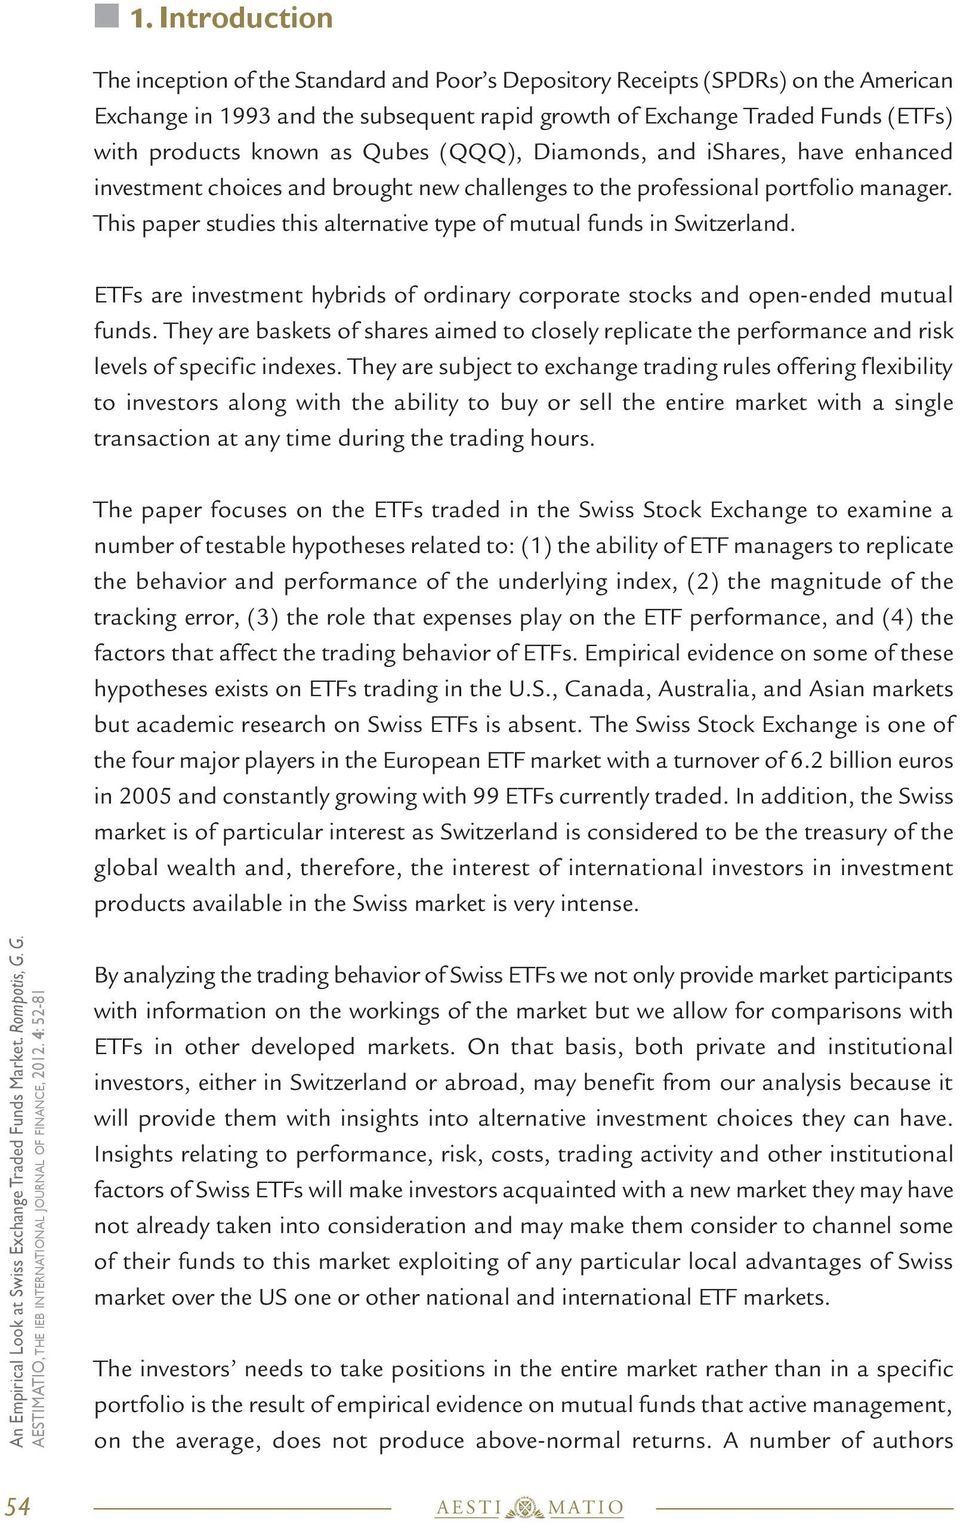 This paper studies this alternative type of mutual funds in Switzerland. ETFs are investment hybrids of ordinary corporate stocks and open-ended mutual funds.